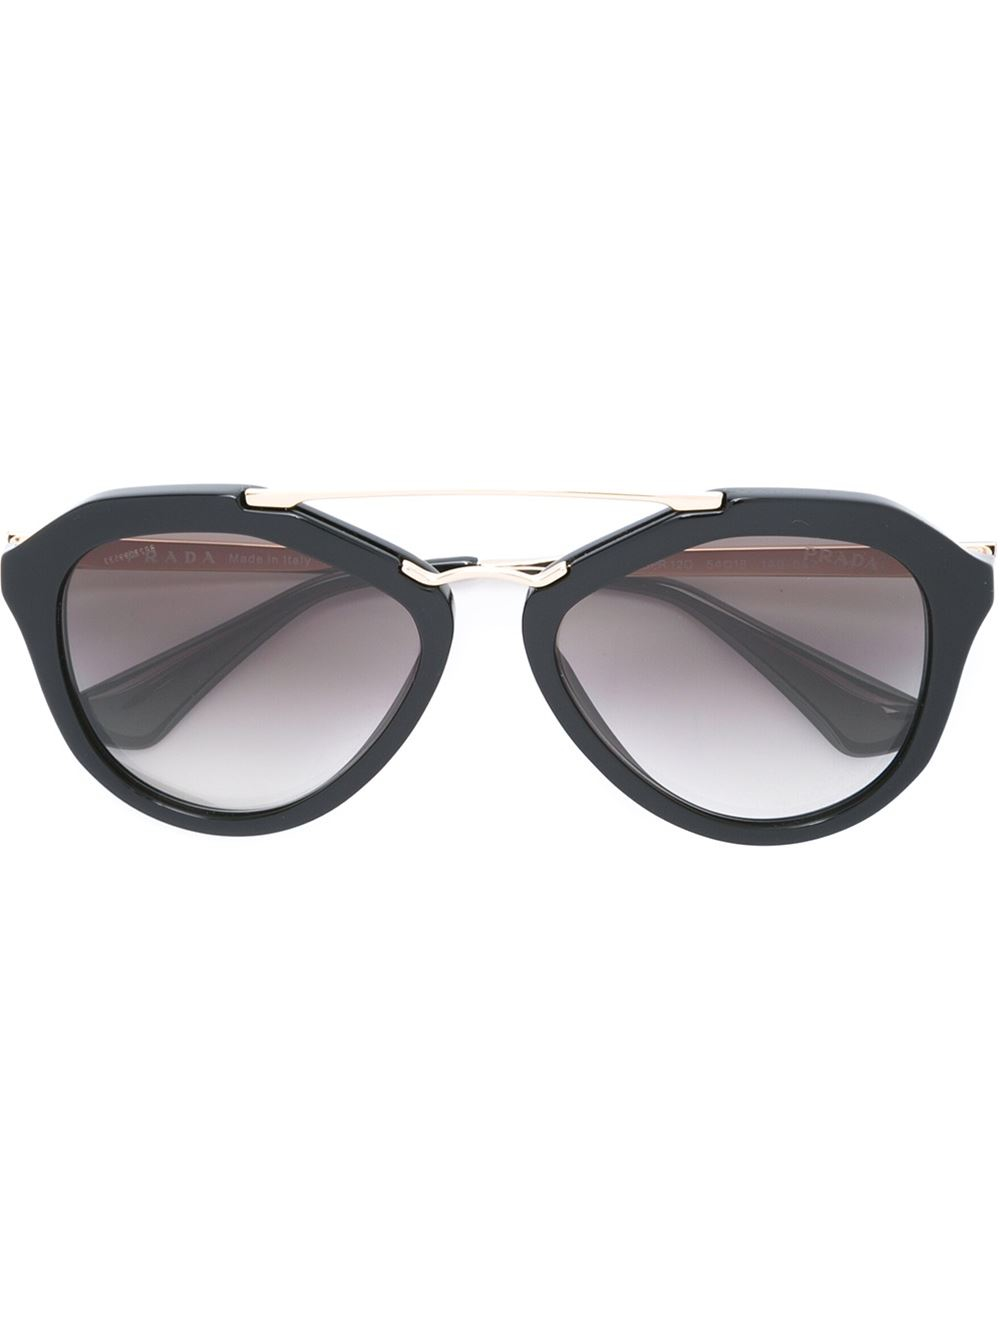 Prada D Frame Sunglasses in Gold (unavailable) Lyst